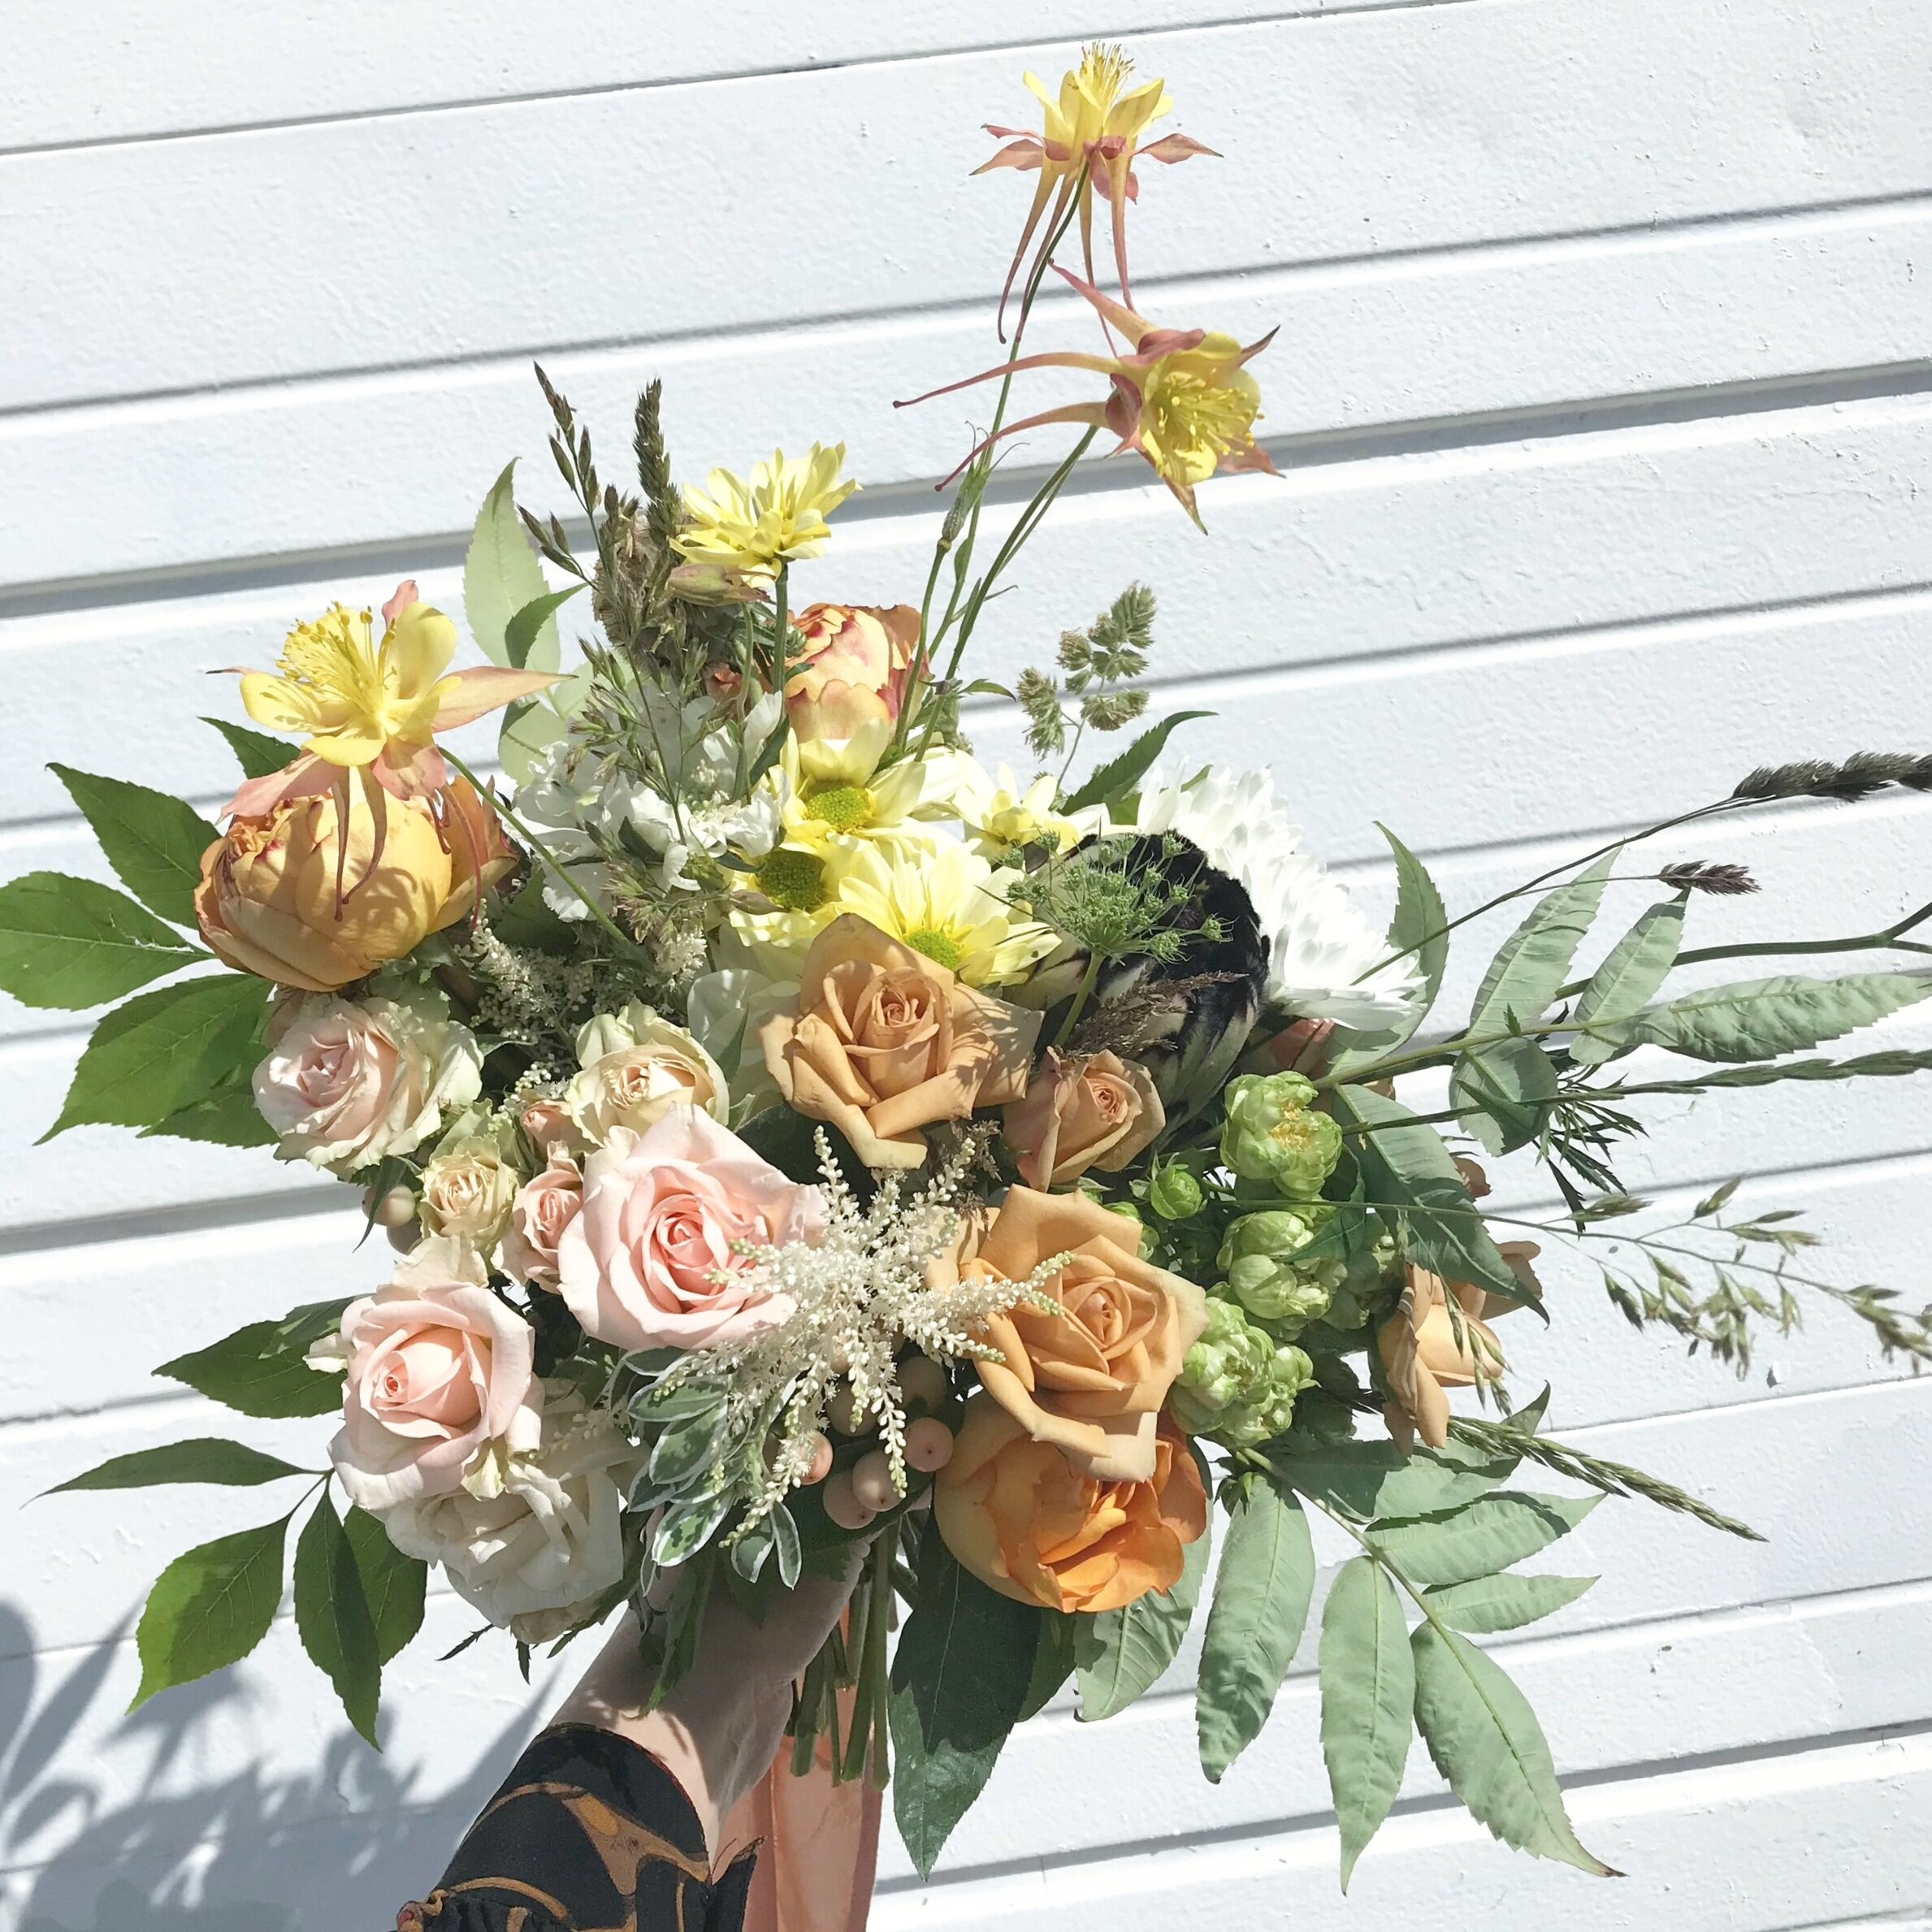 weddings & events - We specialize in wedding flowers from bouquets to boutonnières to arches and unique backdrops. Our style is non-traditional, off-beat, and conceptual. If you can dream it up, we can help make it a reality – and at a competitive rate, too.If you are interested in setting up a complementary consultation, please submit a request via our Contact page or phone us at 716 220 7257.